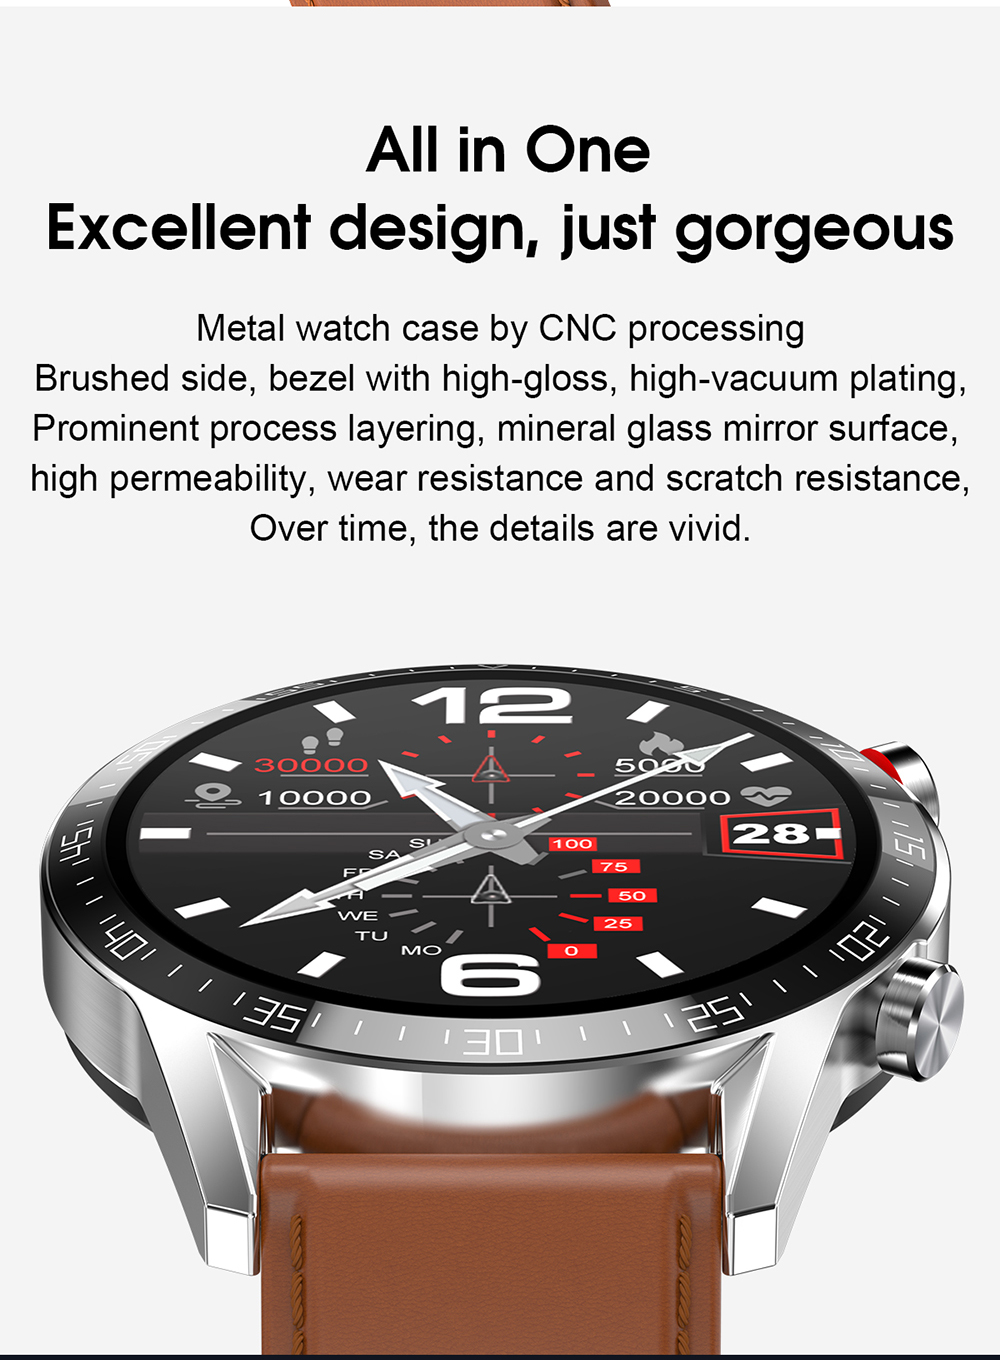 He40fed6ee90c4254ab214a2025ca4eb9v Reloj Inteligente Hombre Smart Watch Men 2020 Android IP68 Smartwatch Answer Call Smart Watch Man For Huawei Android Apple Phone